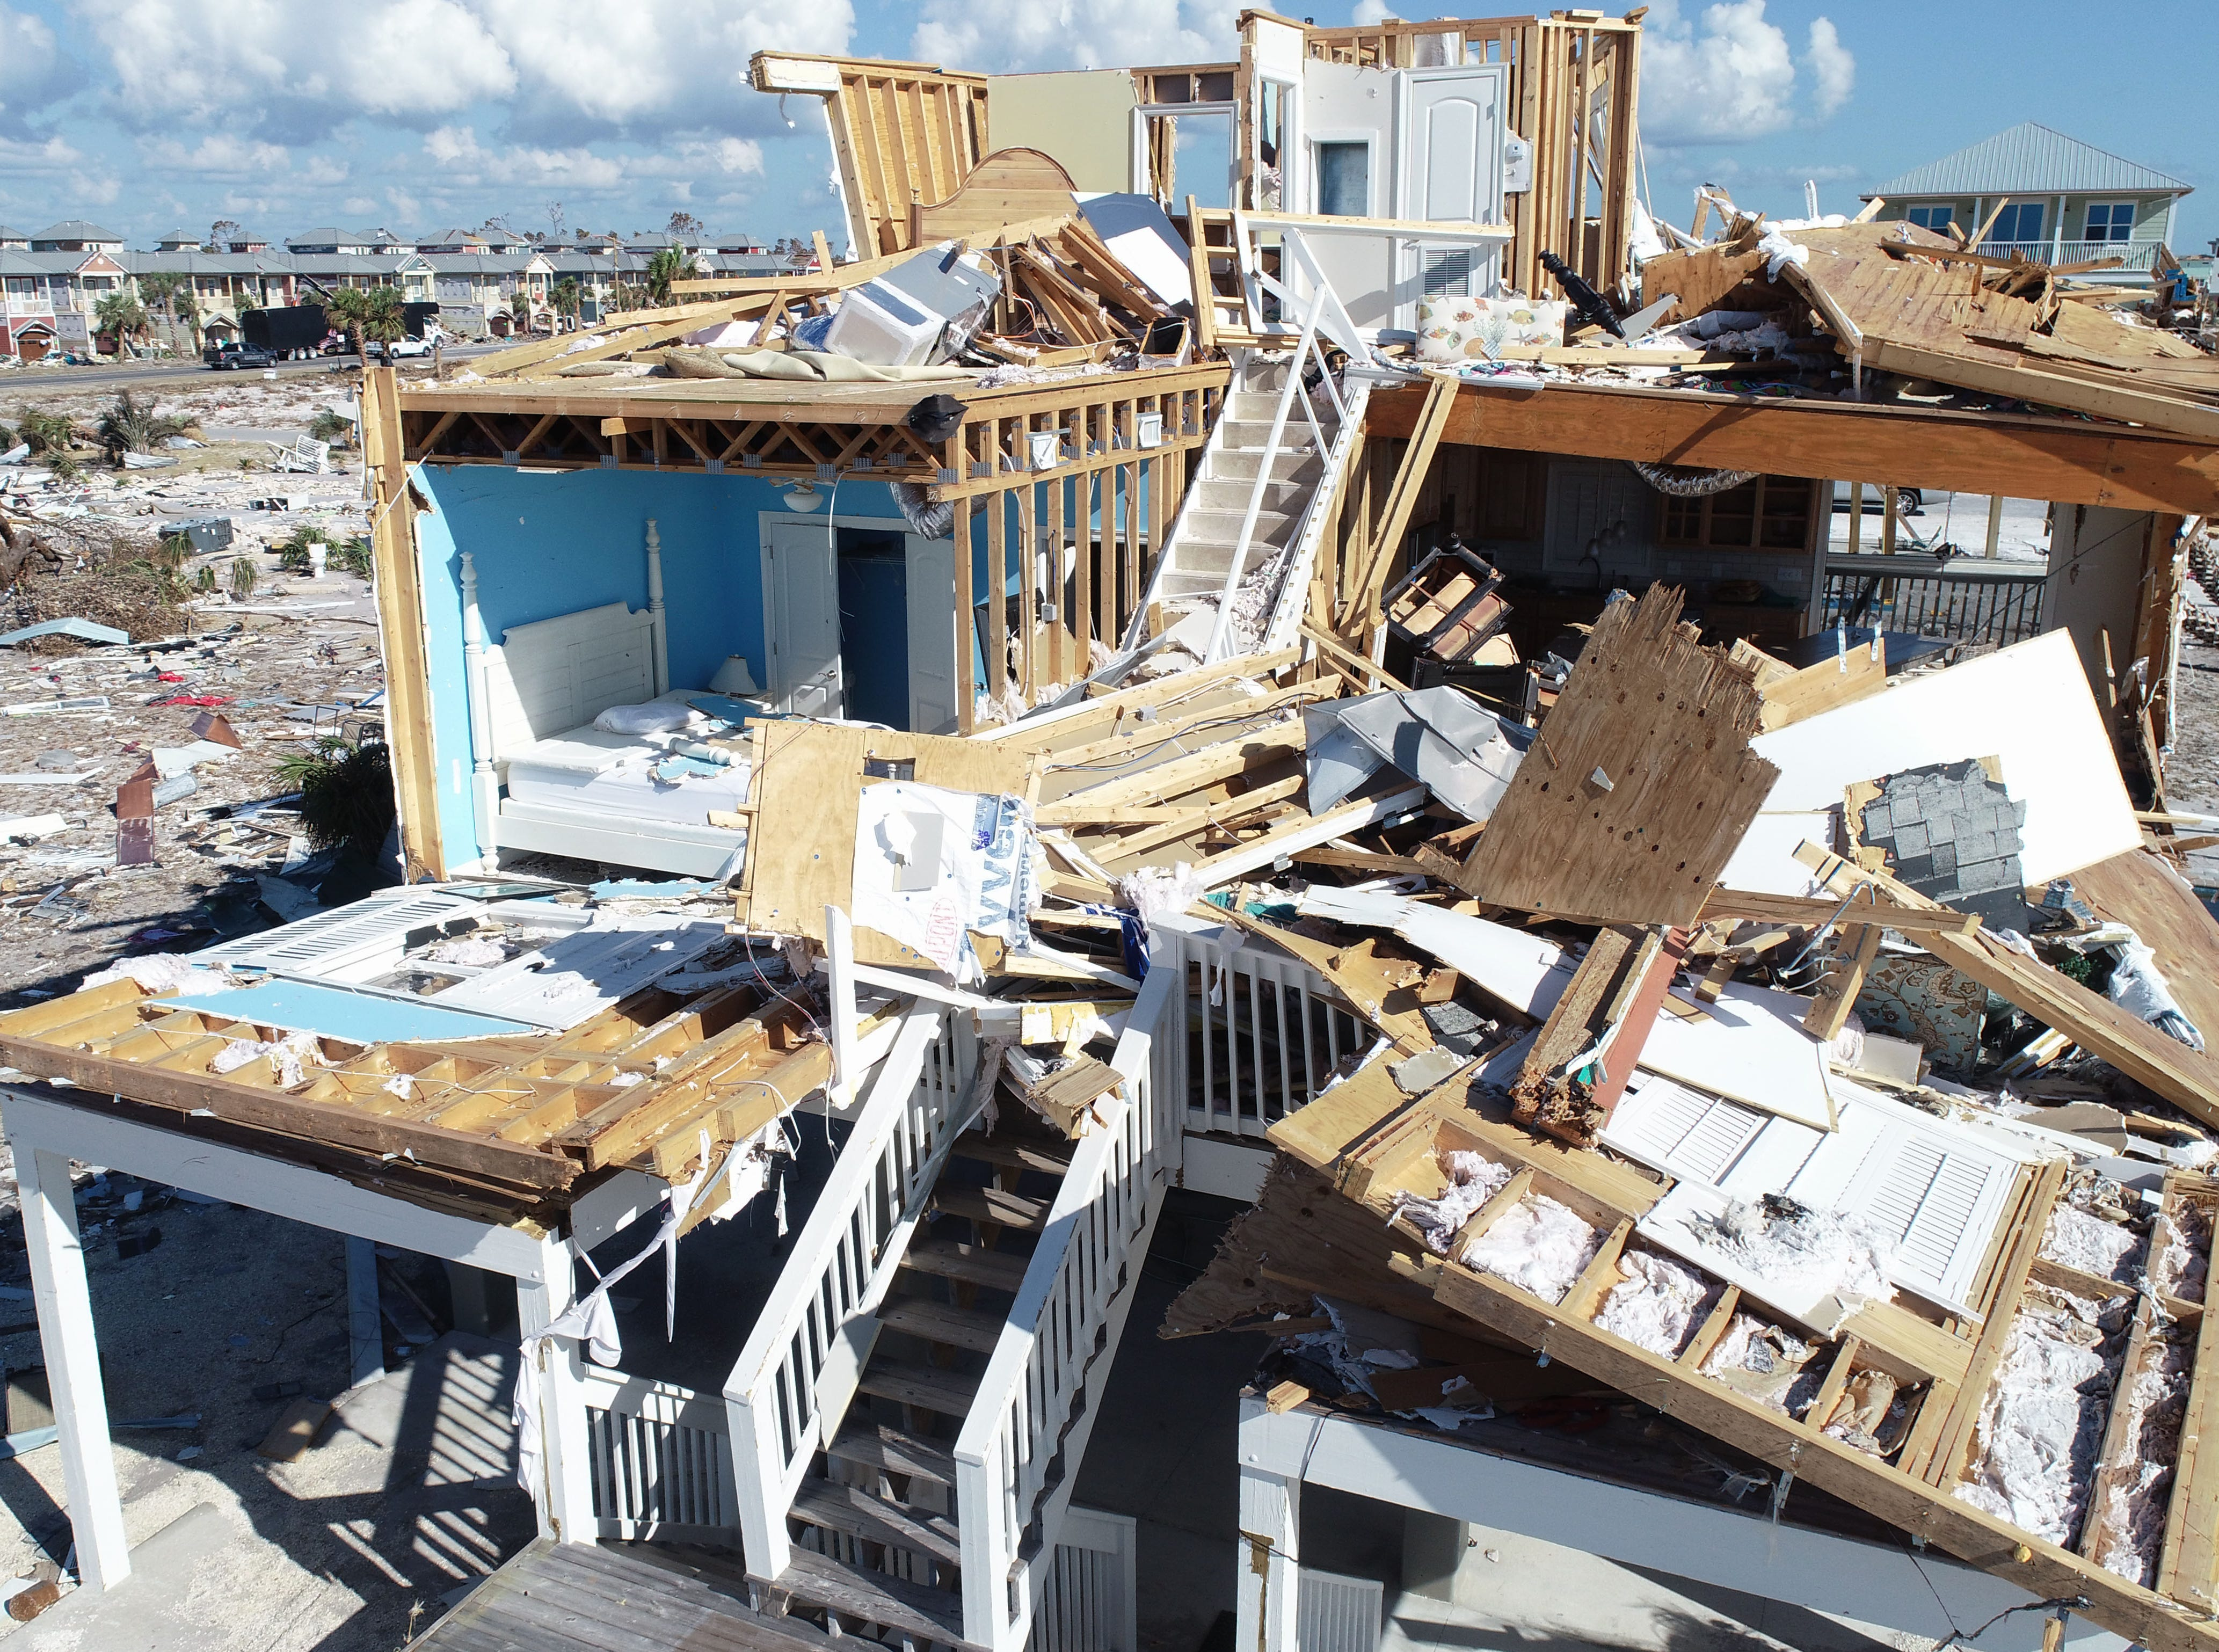 This home in Mexico Beach, Florida, shown Tuesday, Oct. 16, 2018, sustained catastrophic damage when Hurricane Michael ripped through the city in Florida's Panhandle.